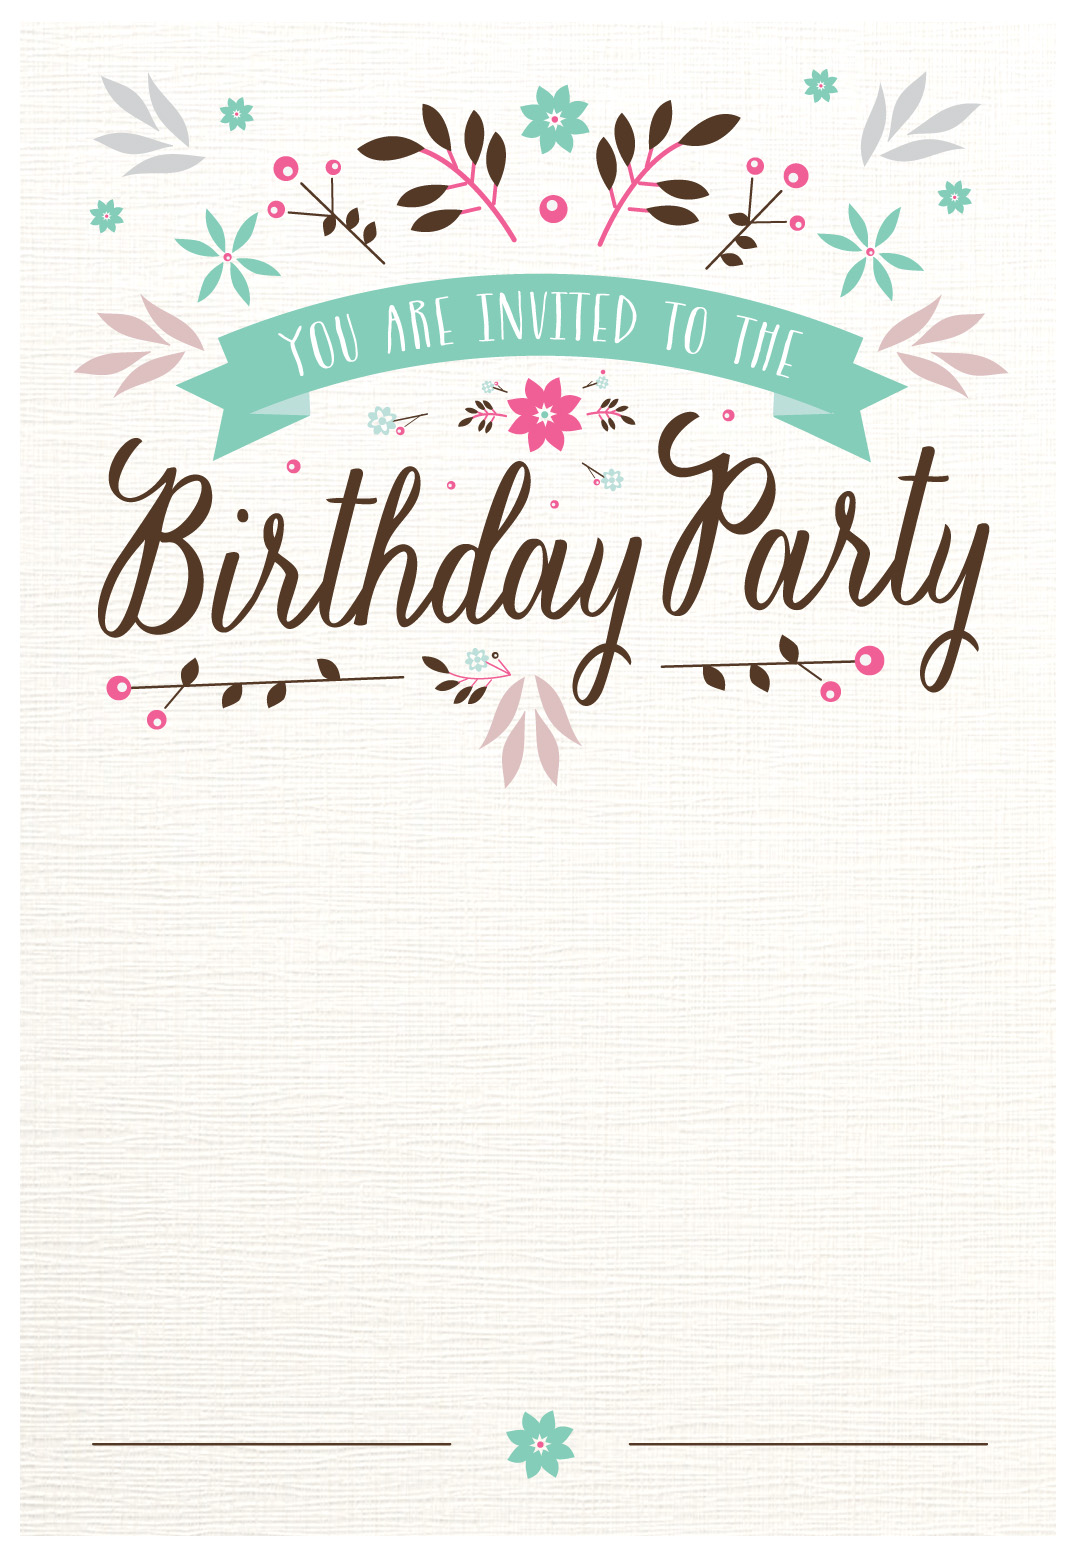 free birthday invitation border templates ; 24ec7eeae4067c318f3f0bc0a00248df_6_8